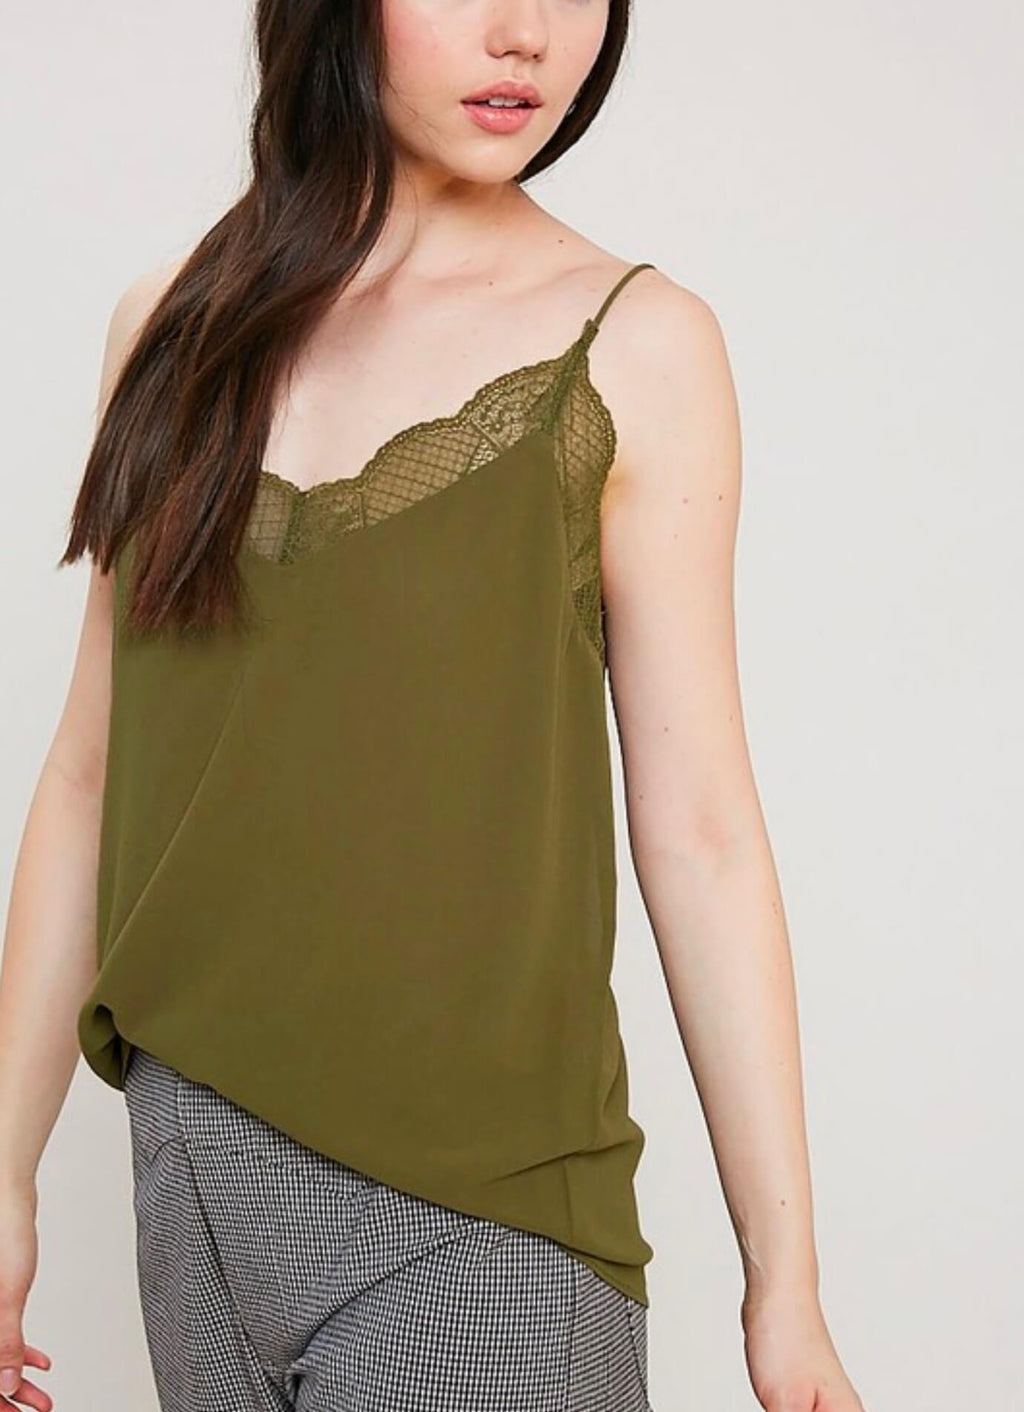 V-Neck Sleeveless Lace Trimmed Camisole Top in Olive